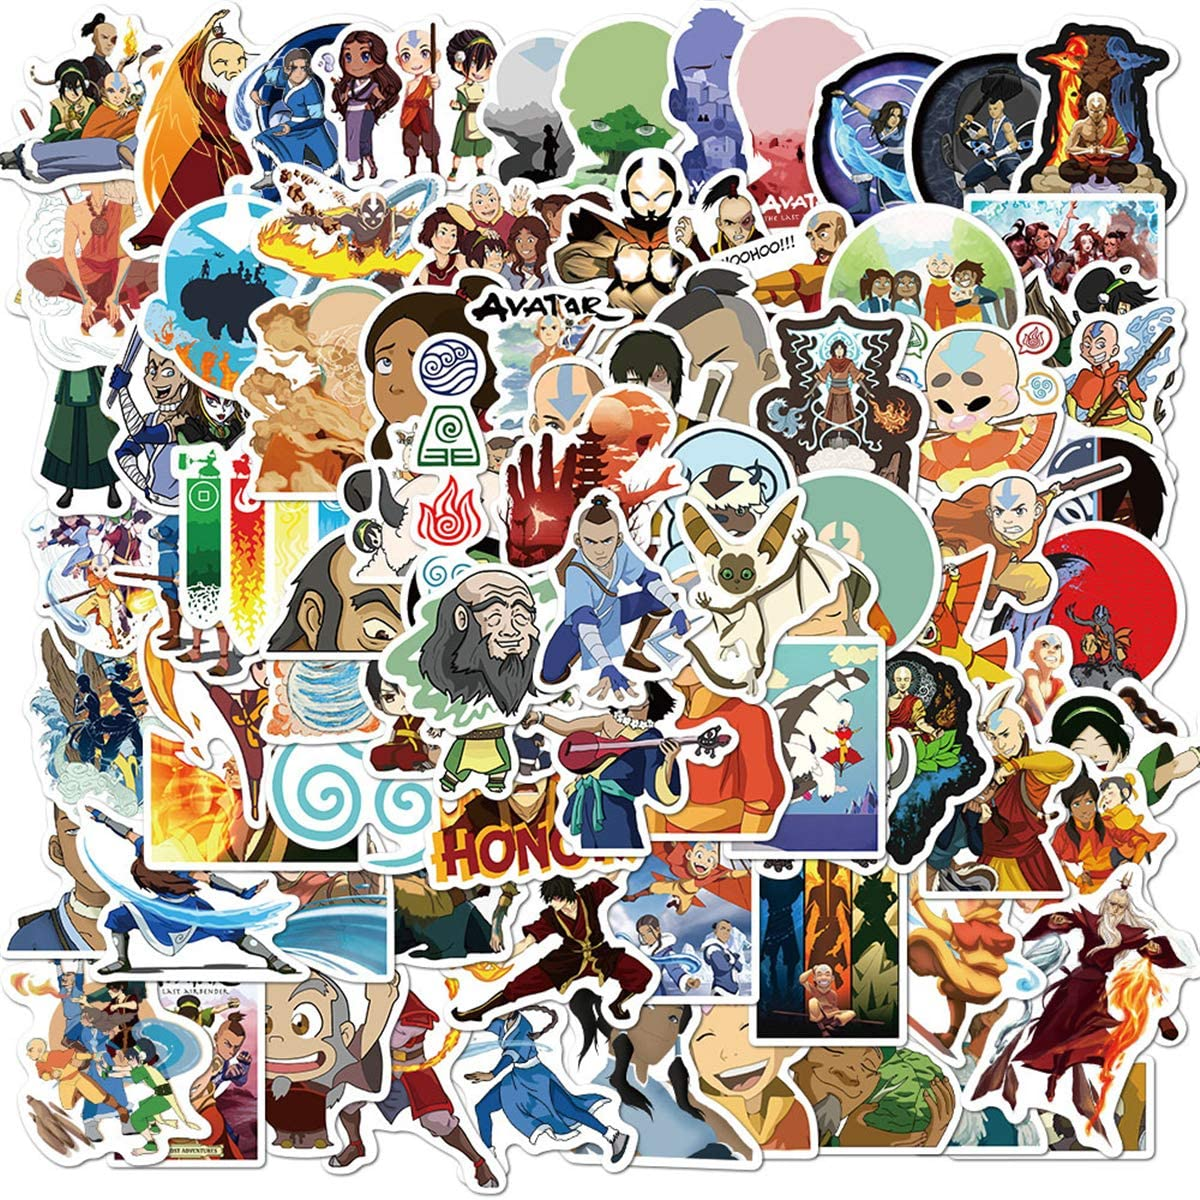 YOUTHSTORE 100pcs The Last Airbender Cartoon Stickers Kung Fu Stickers for Laptop Water Bottle Luggage Snowboard Bicycle Skateboard Decal for Kids Teens Waterproof Aesthetic Stickers (Avatar 100)